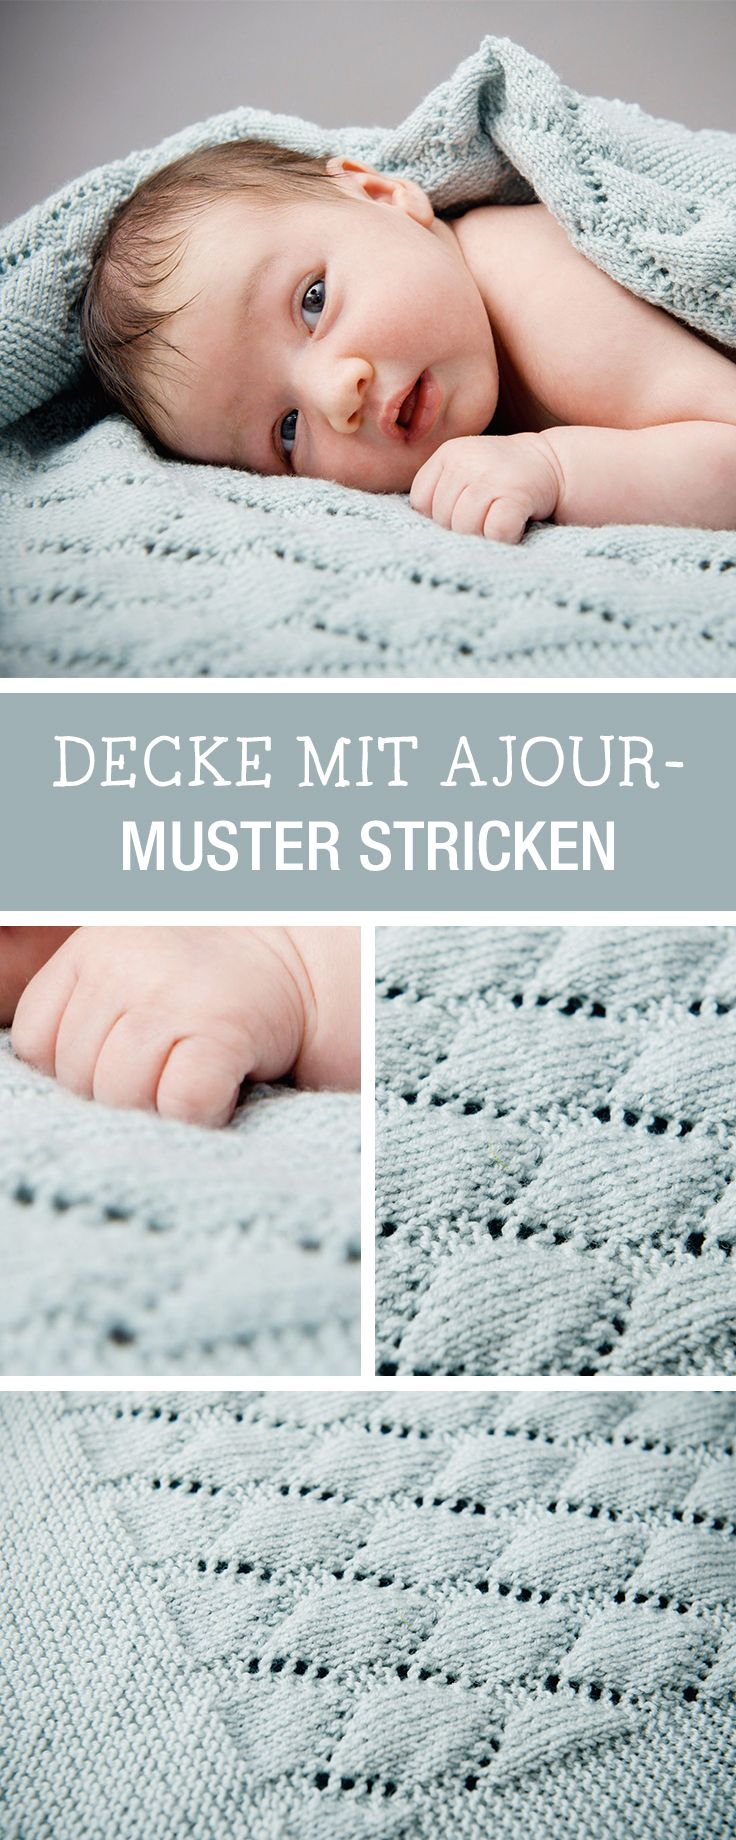 Stricken - DIY-Anleitungen | Pinterest | Babies, Diy baby and Knit ...